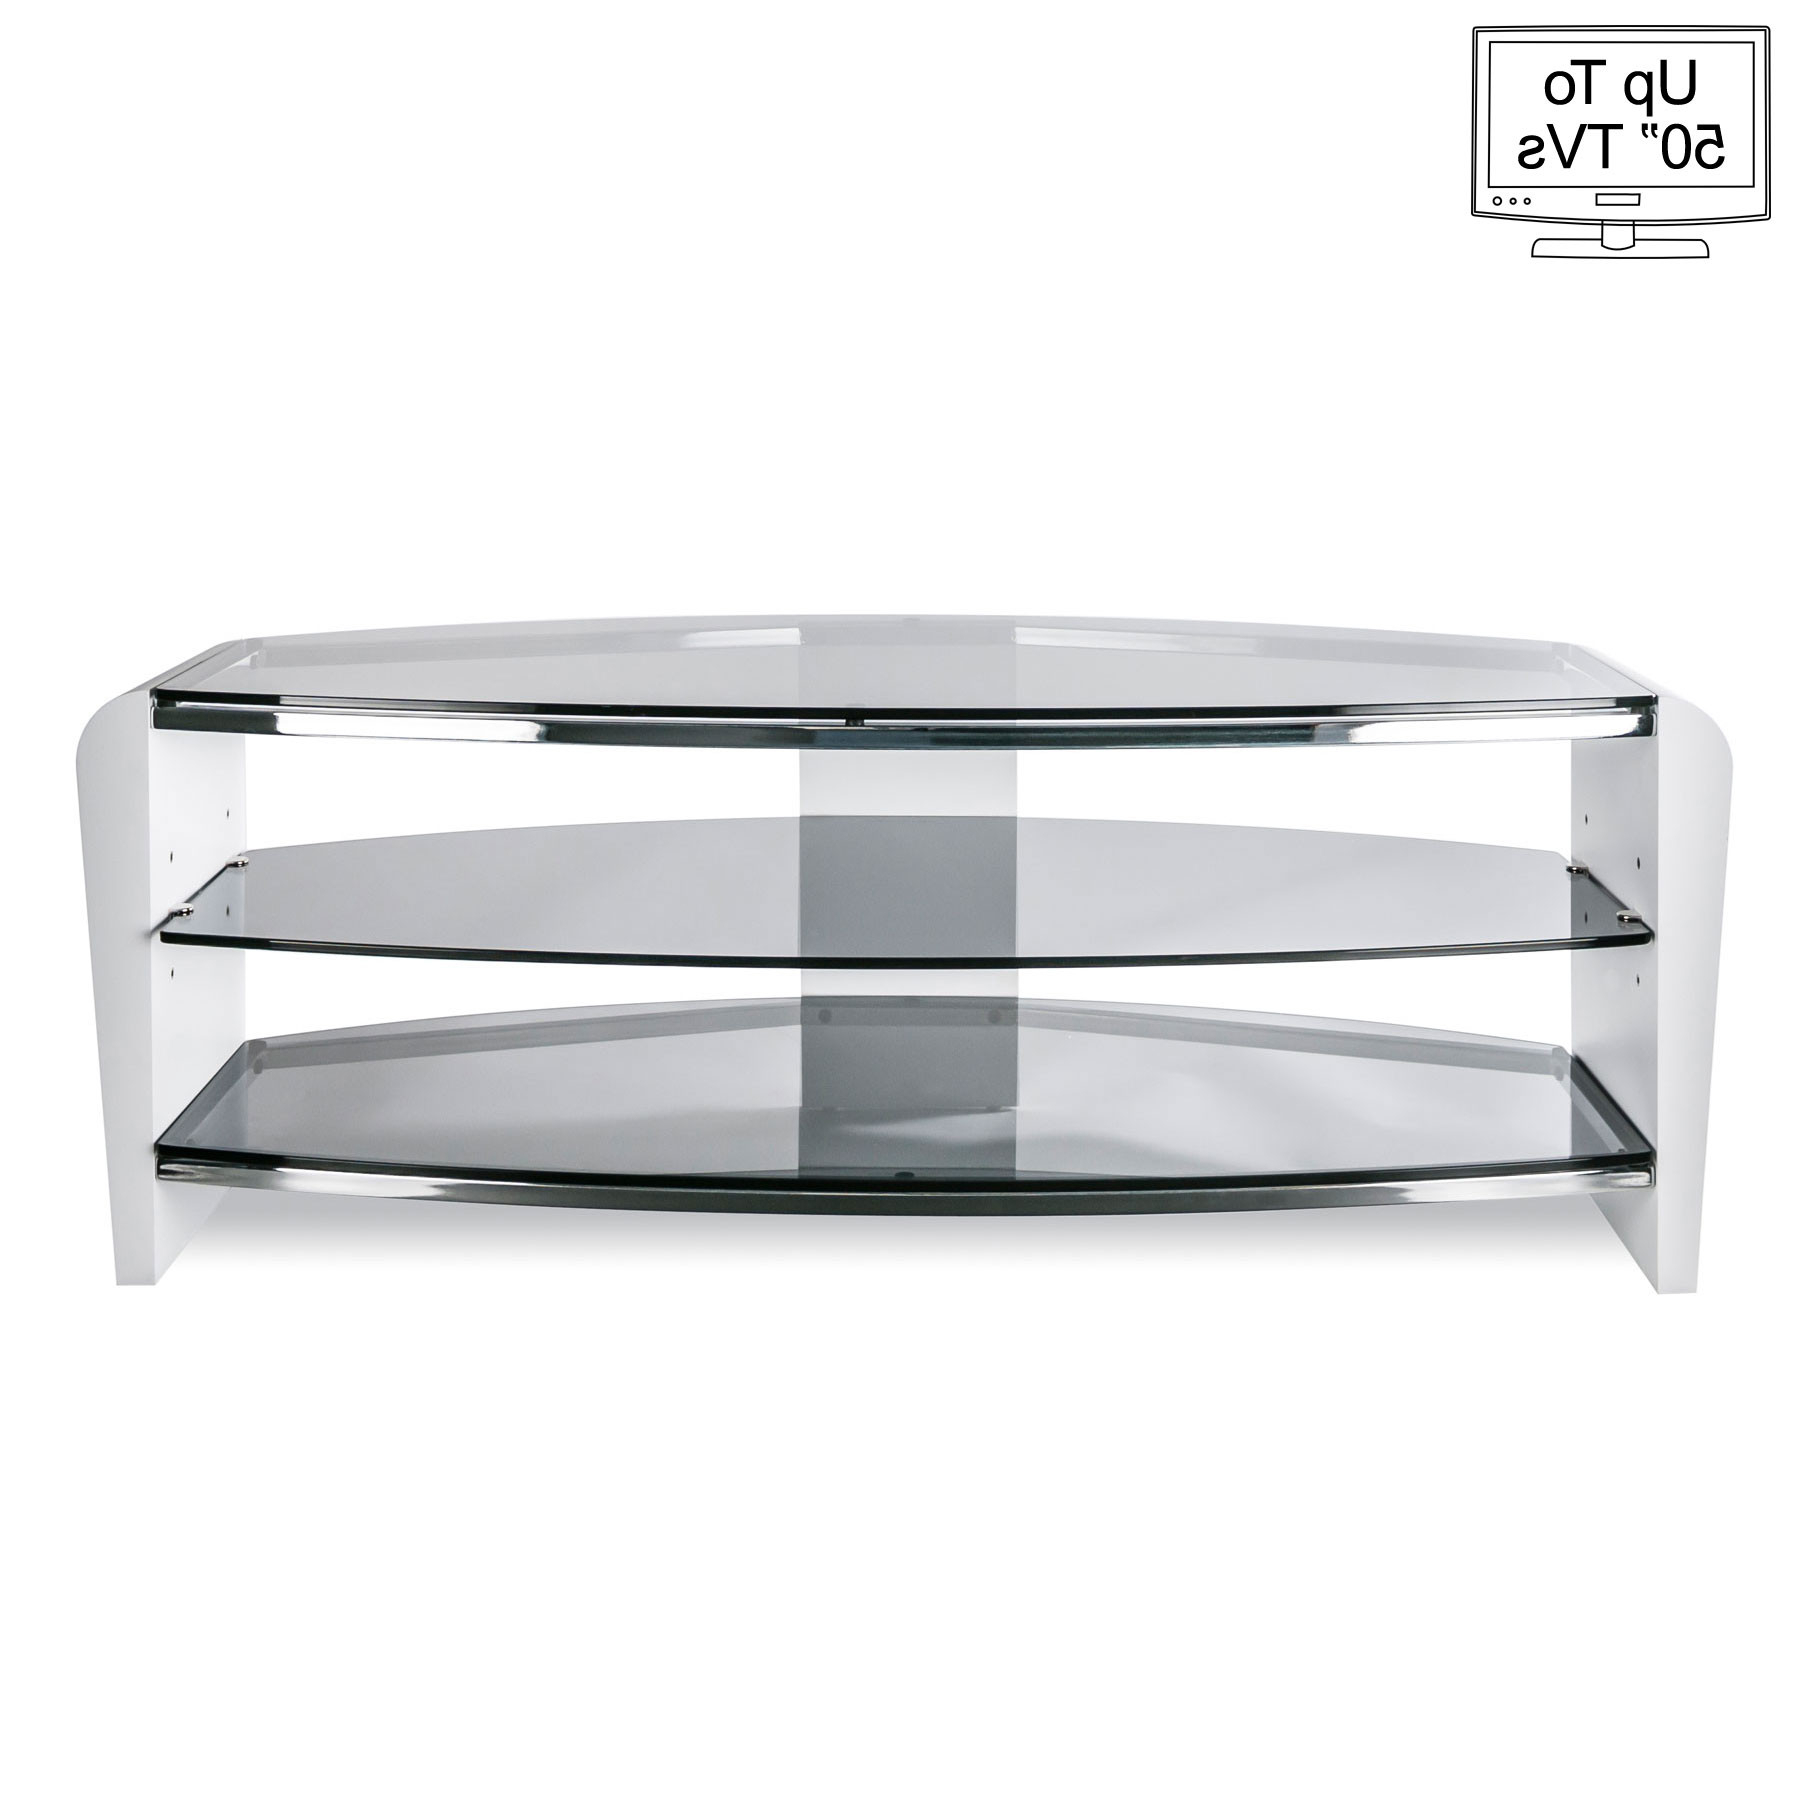 "Famous Smoked Glass Tv Stands Regarding Alphason Francium 110Cm Smoked Glass Tv Stand For Up To 50"" Tvs (Gallery 20 of 20)"